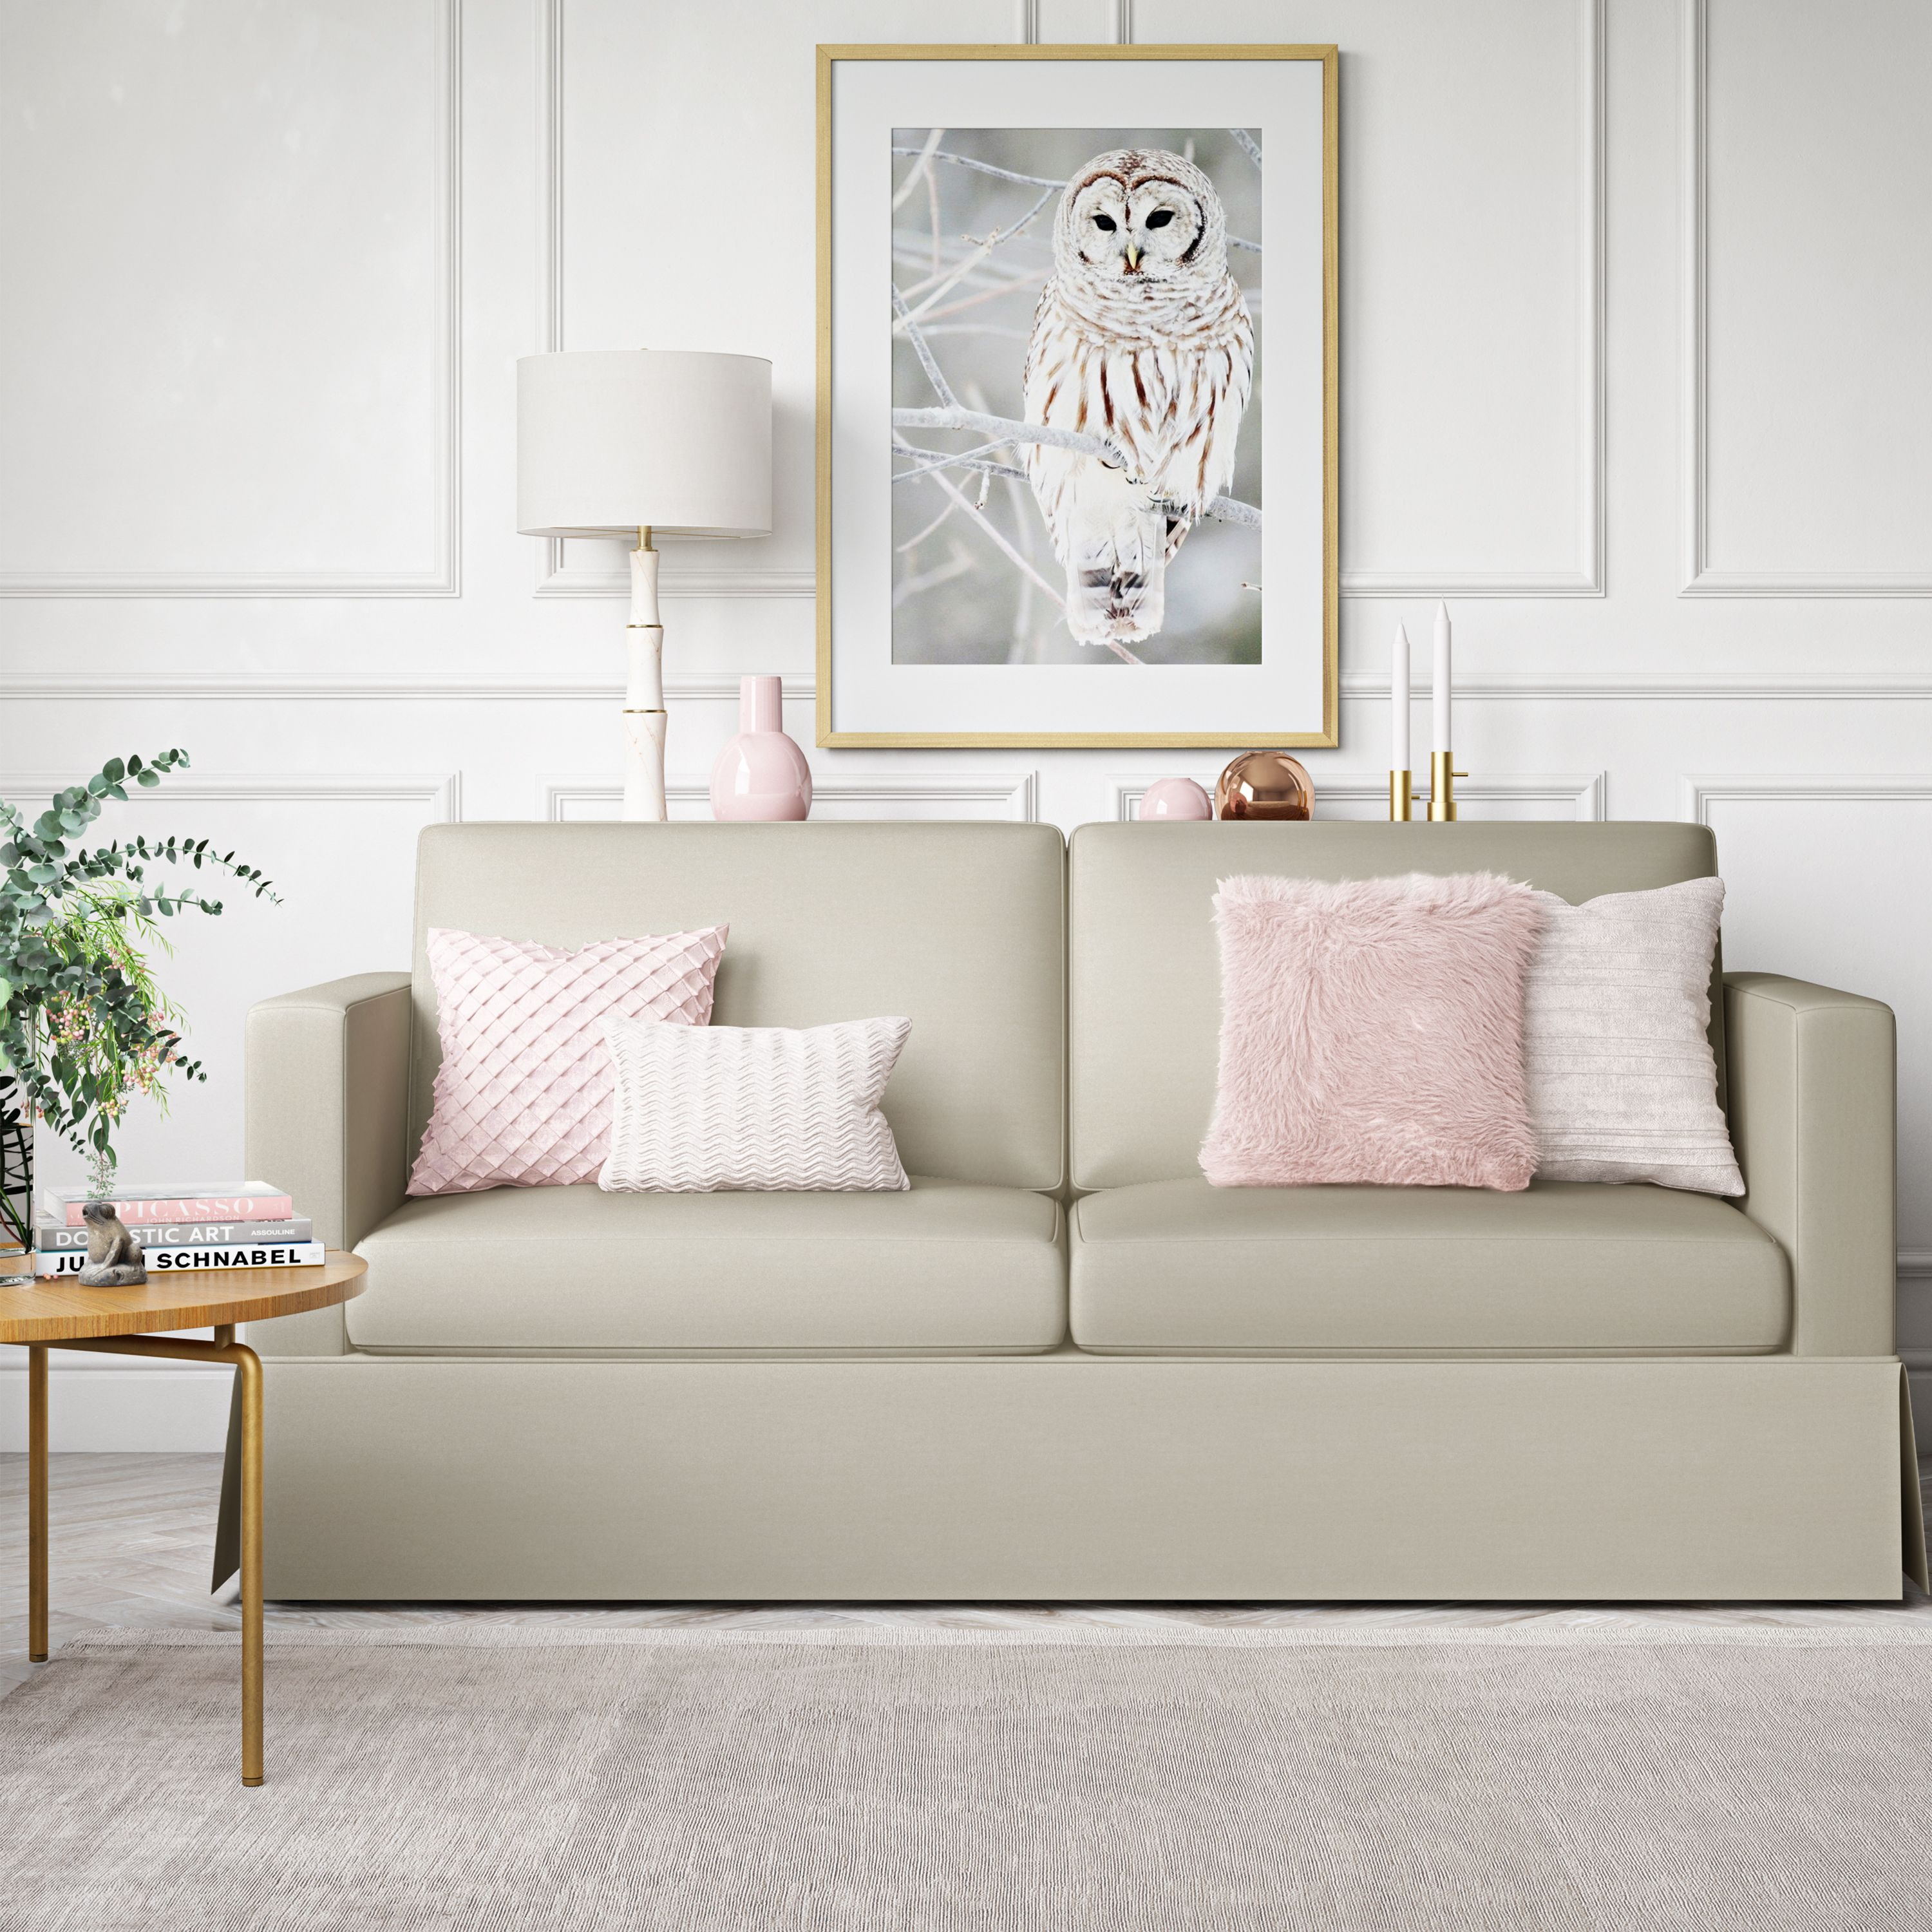 Better Homes and Gardens Russel Skirted Slipcover Sofa, Beige